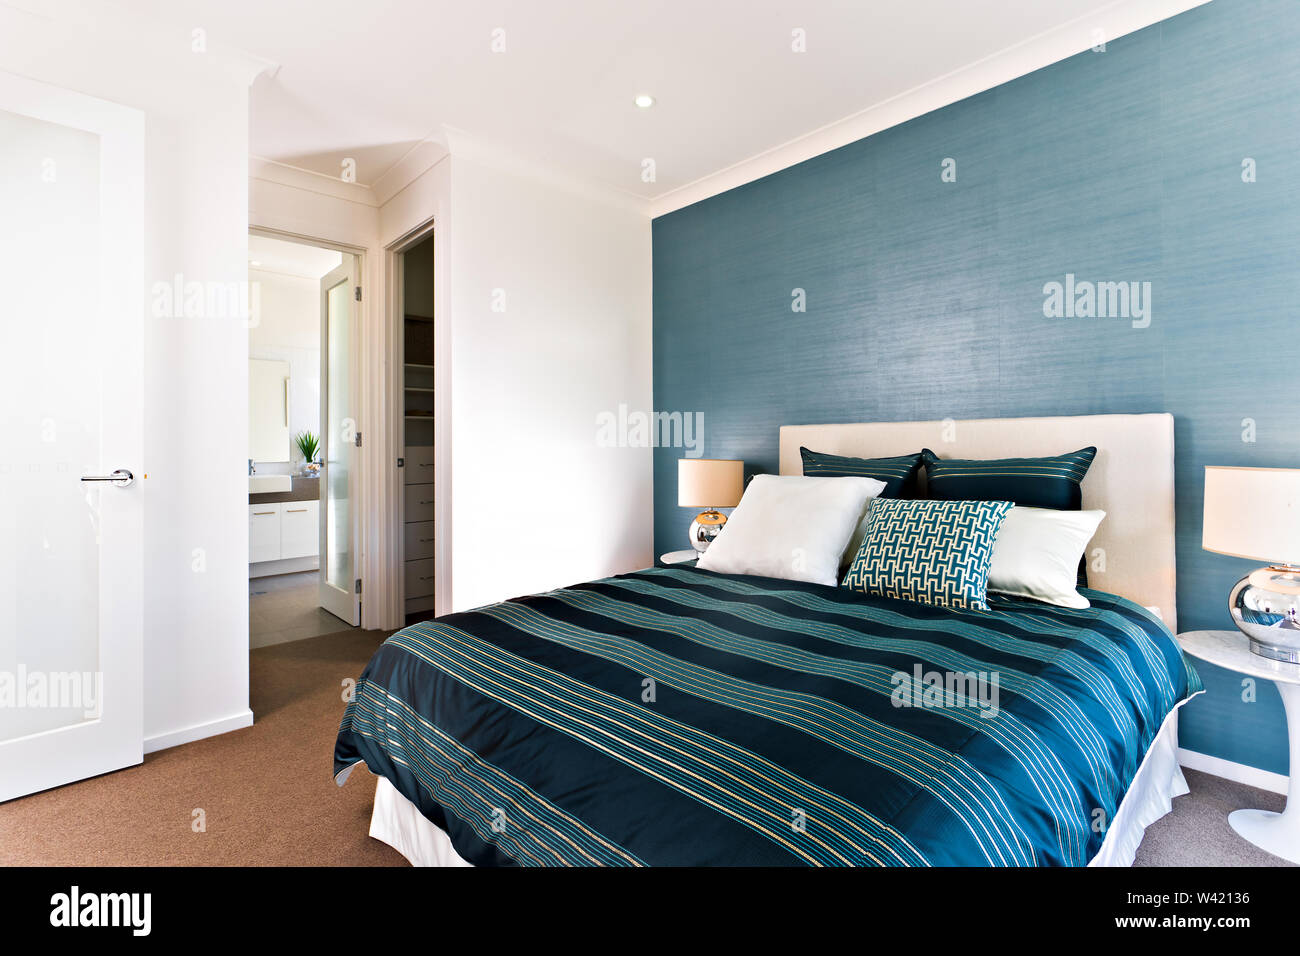 Close up of a blue decorative bedroom with an entrance and